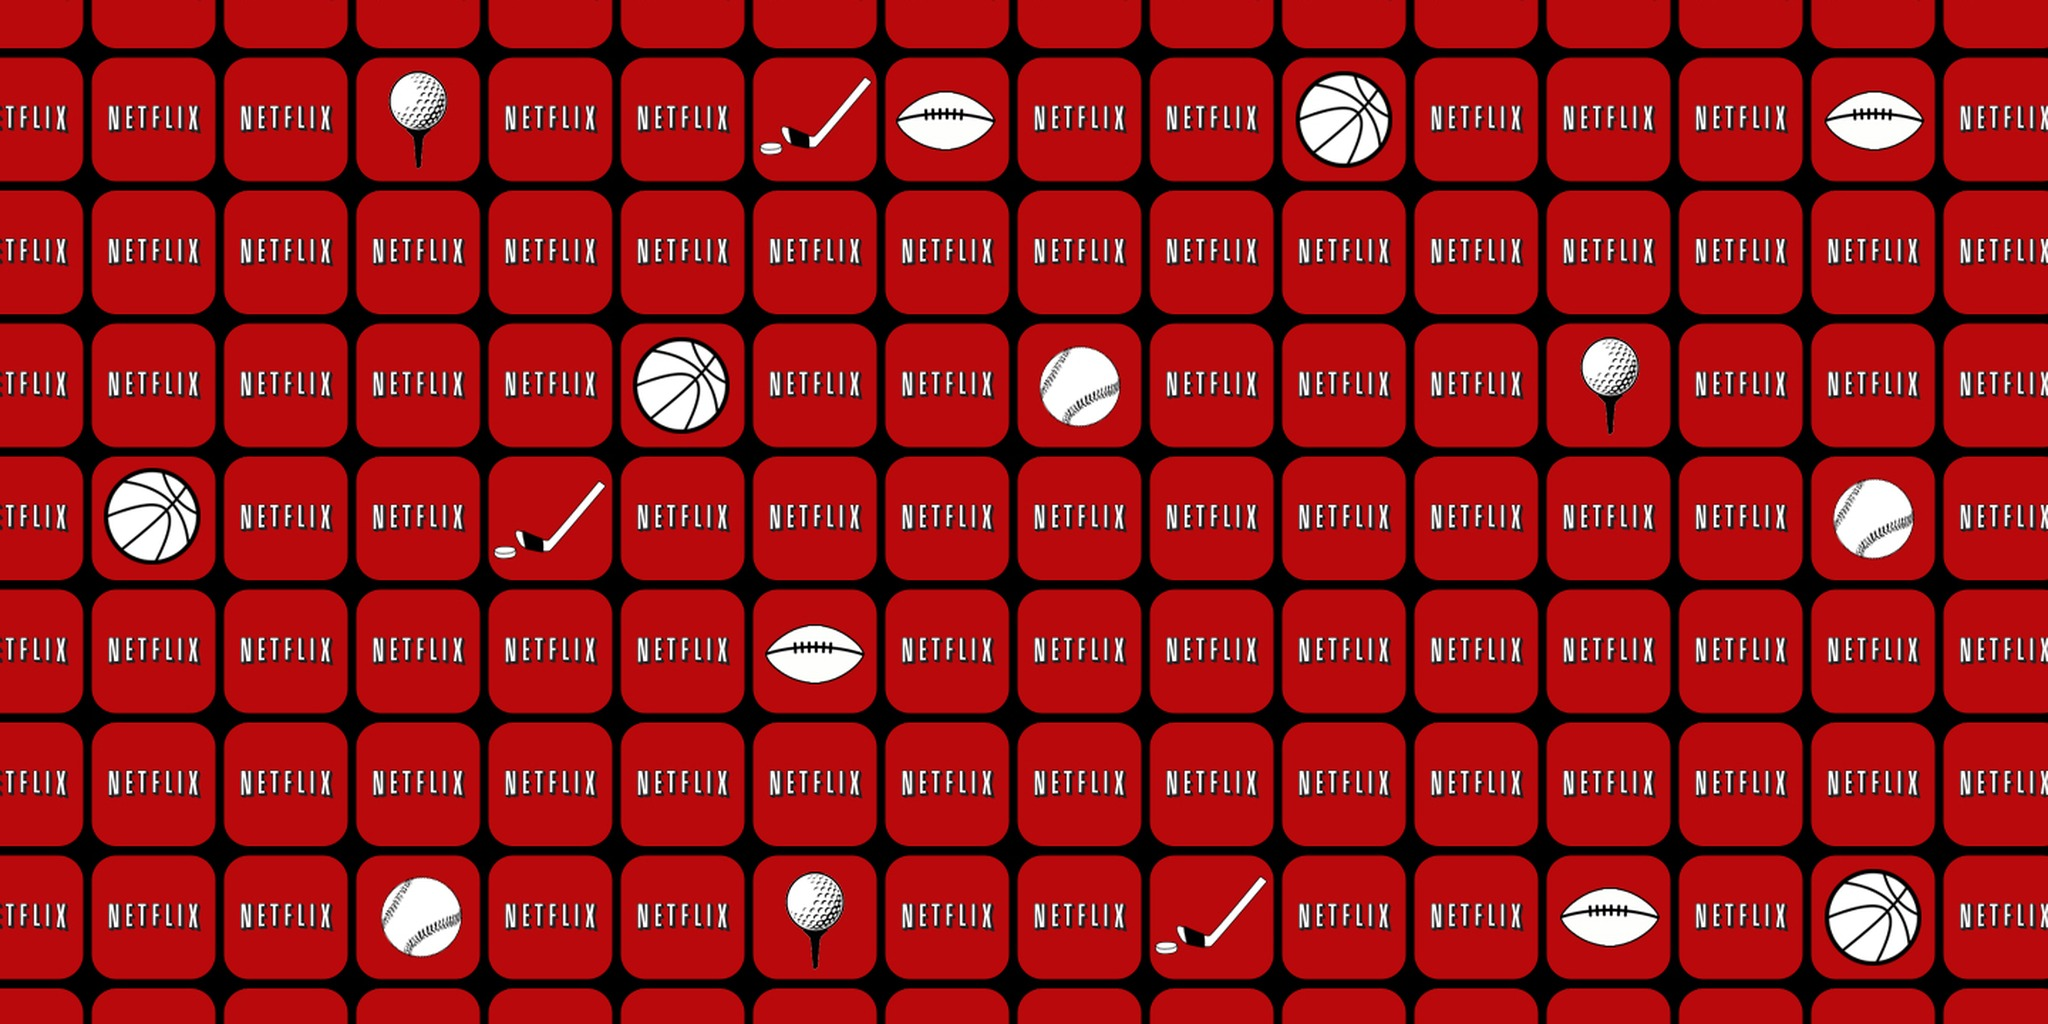 2020 Smart Tech Netflix Sports Google Watch